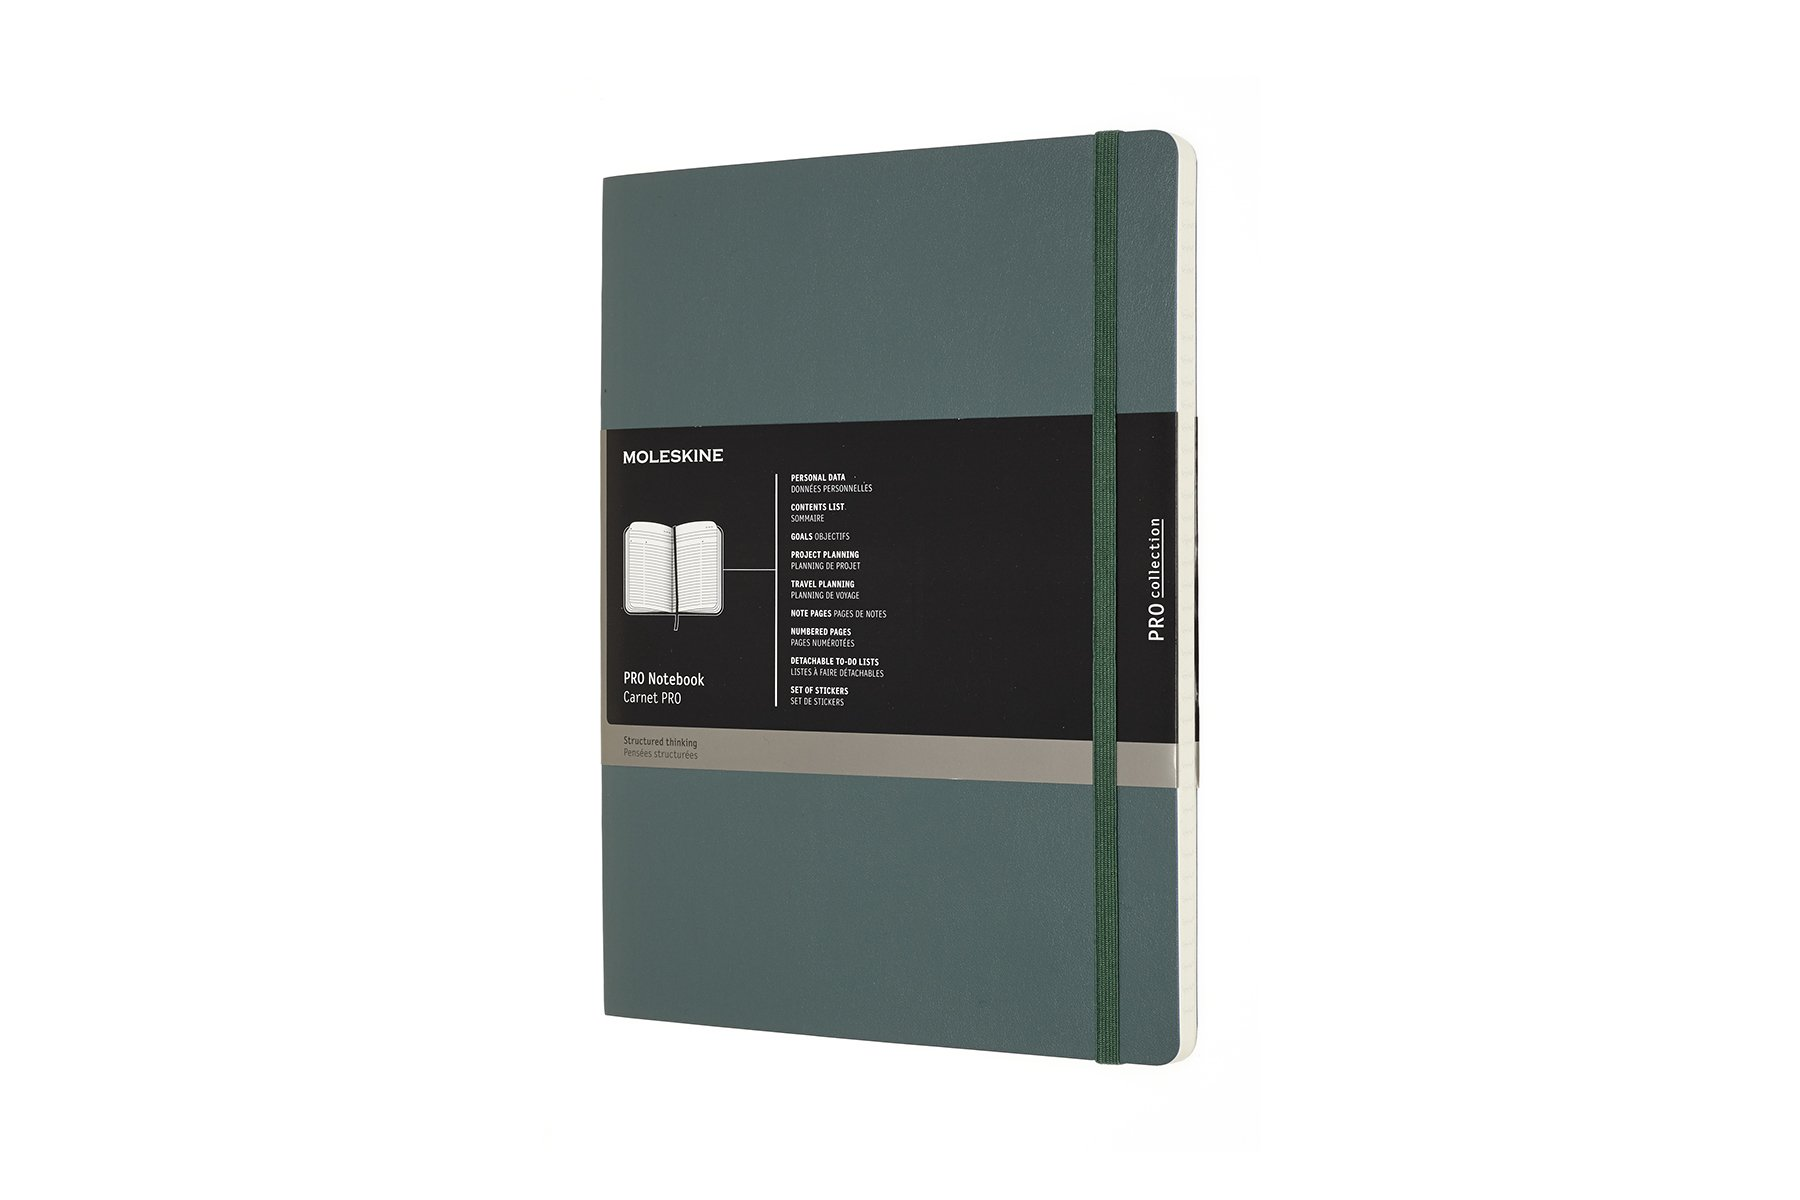 Moleskine Pro Notebook Professional Notebook Ideal For Office Work Soft Cover And Elastic Closure Size Extra Large 19 X 25 Colour Forest Green 192 Pages Buy Online